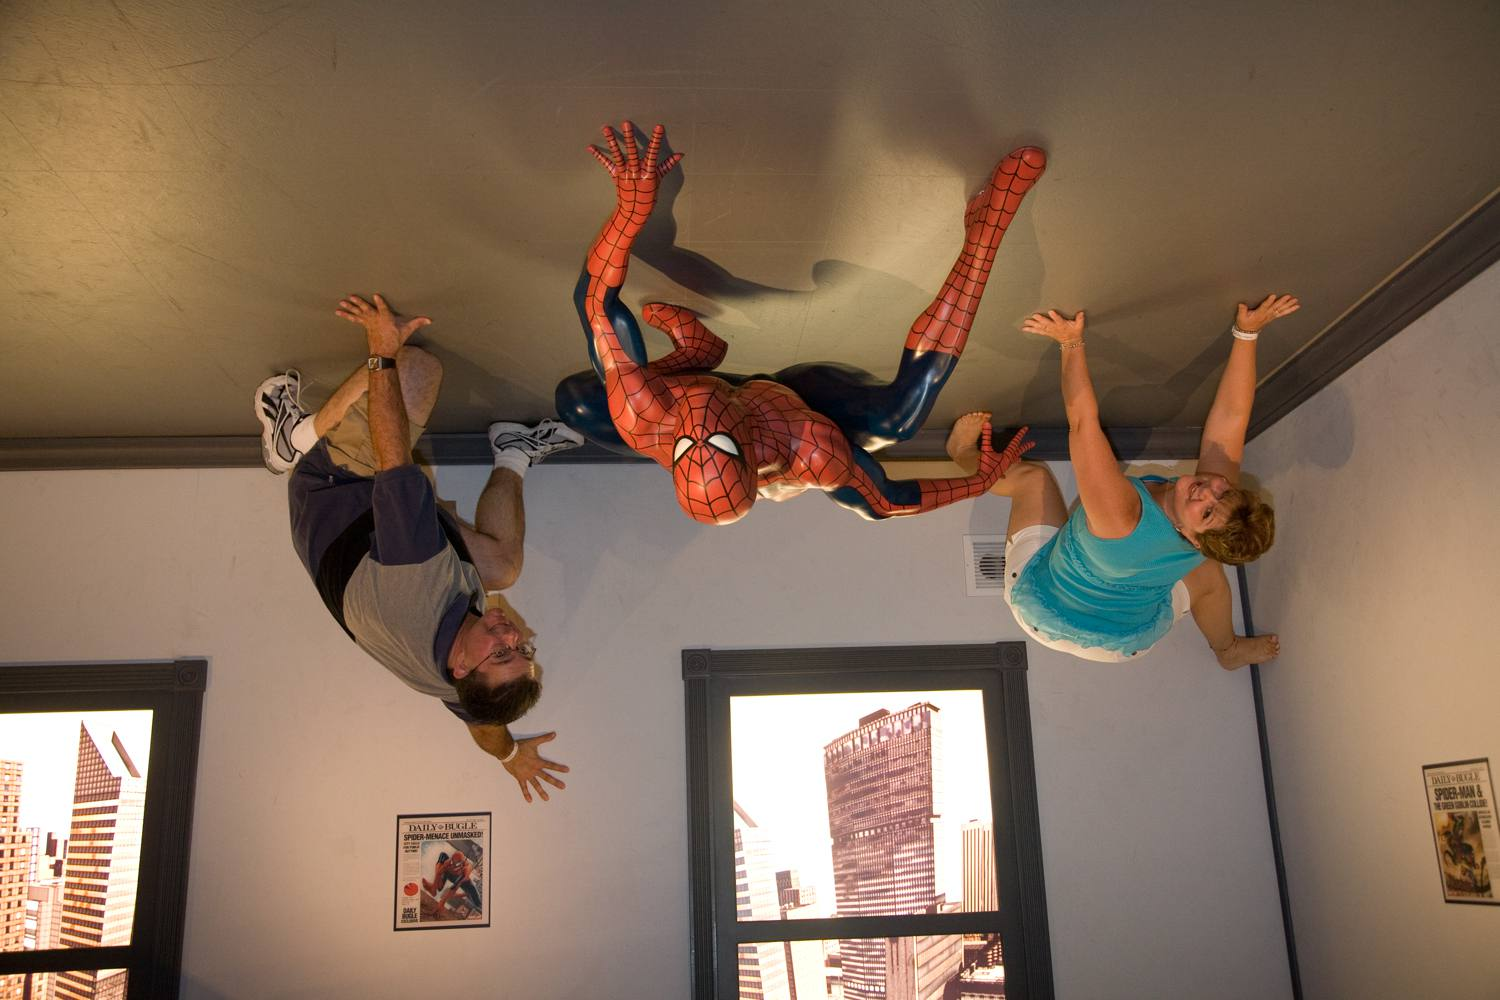 Climbing the Ceiling with Spiderman at Madame Tussauds Hollywood